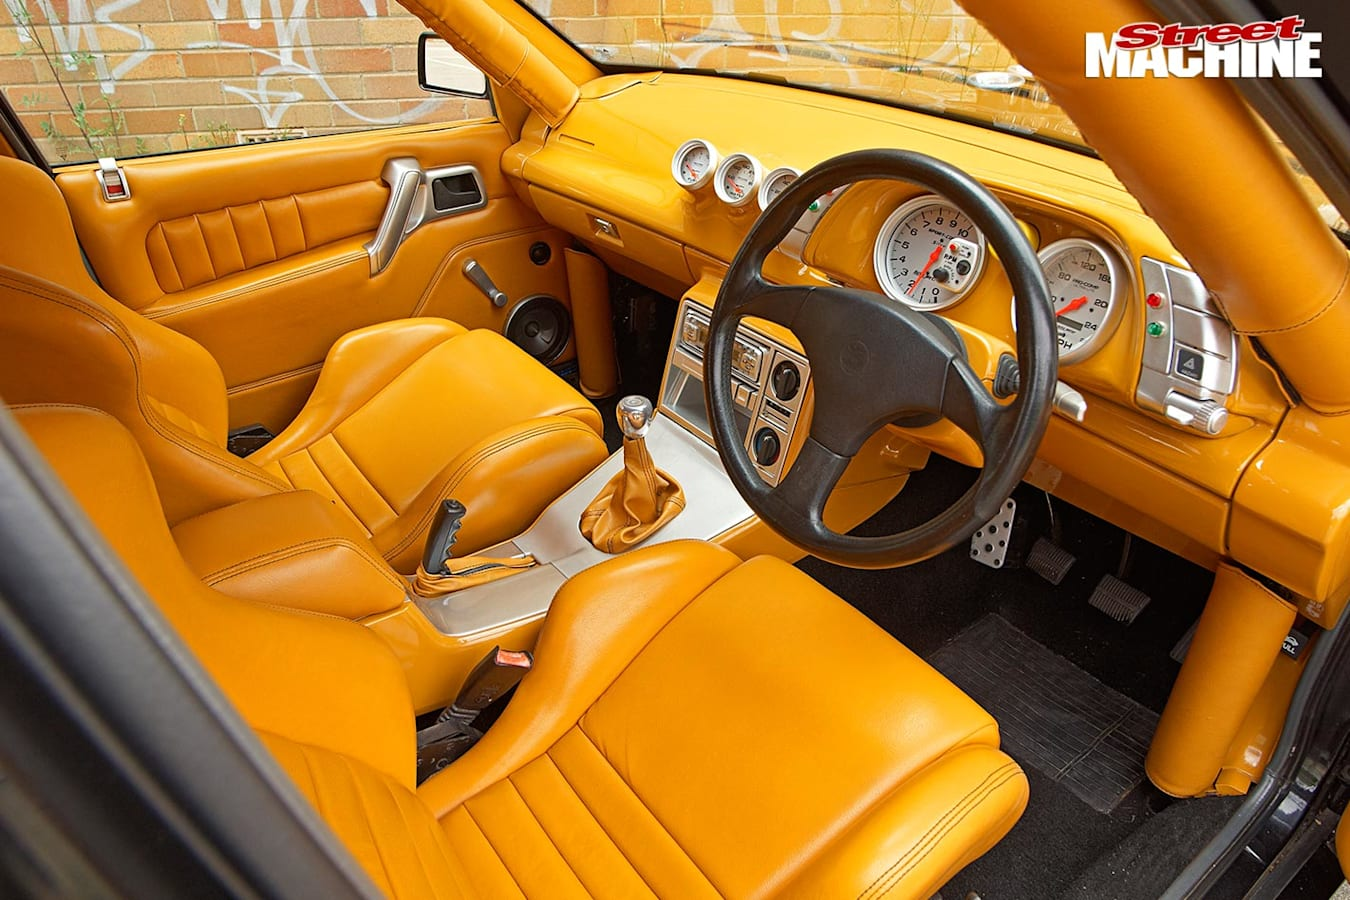 Holden VN Commodore interior front